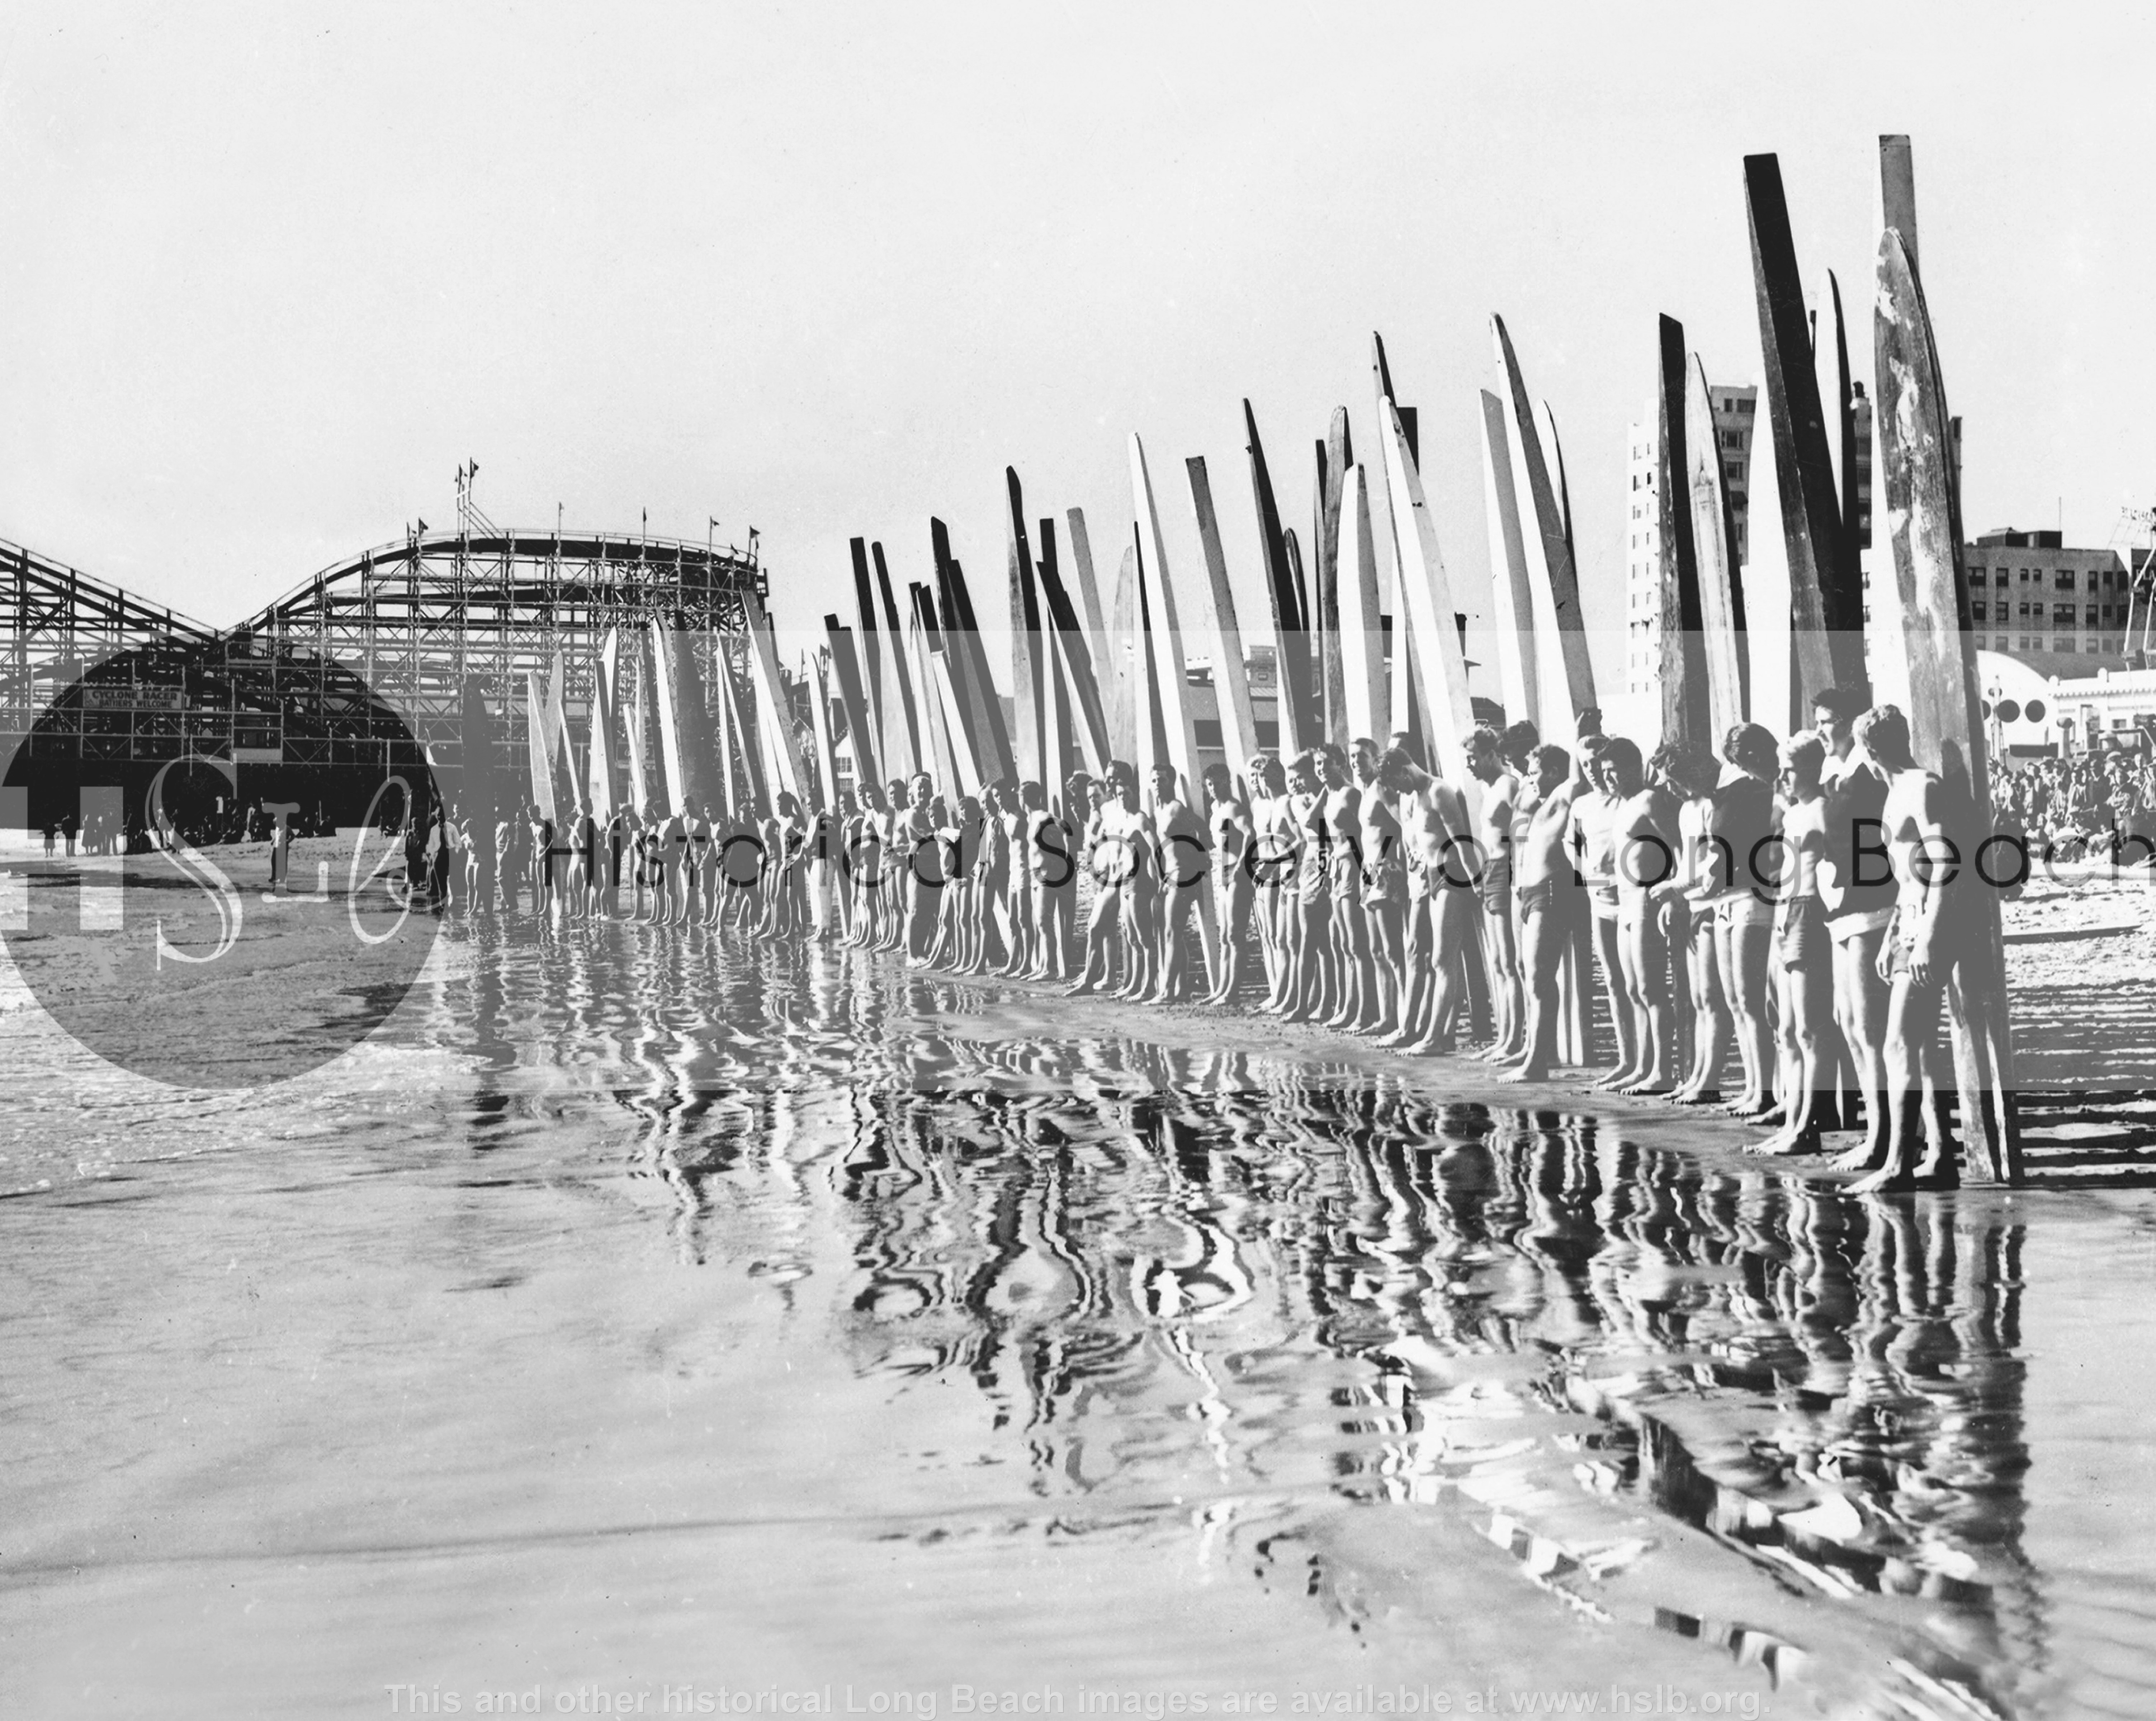 Surfing lineup, 1938 vintage photograph